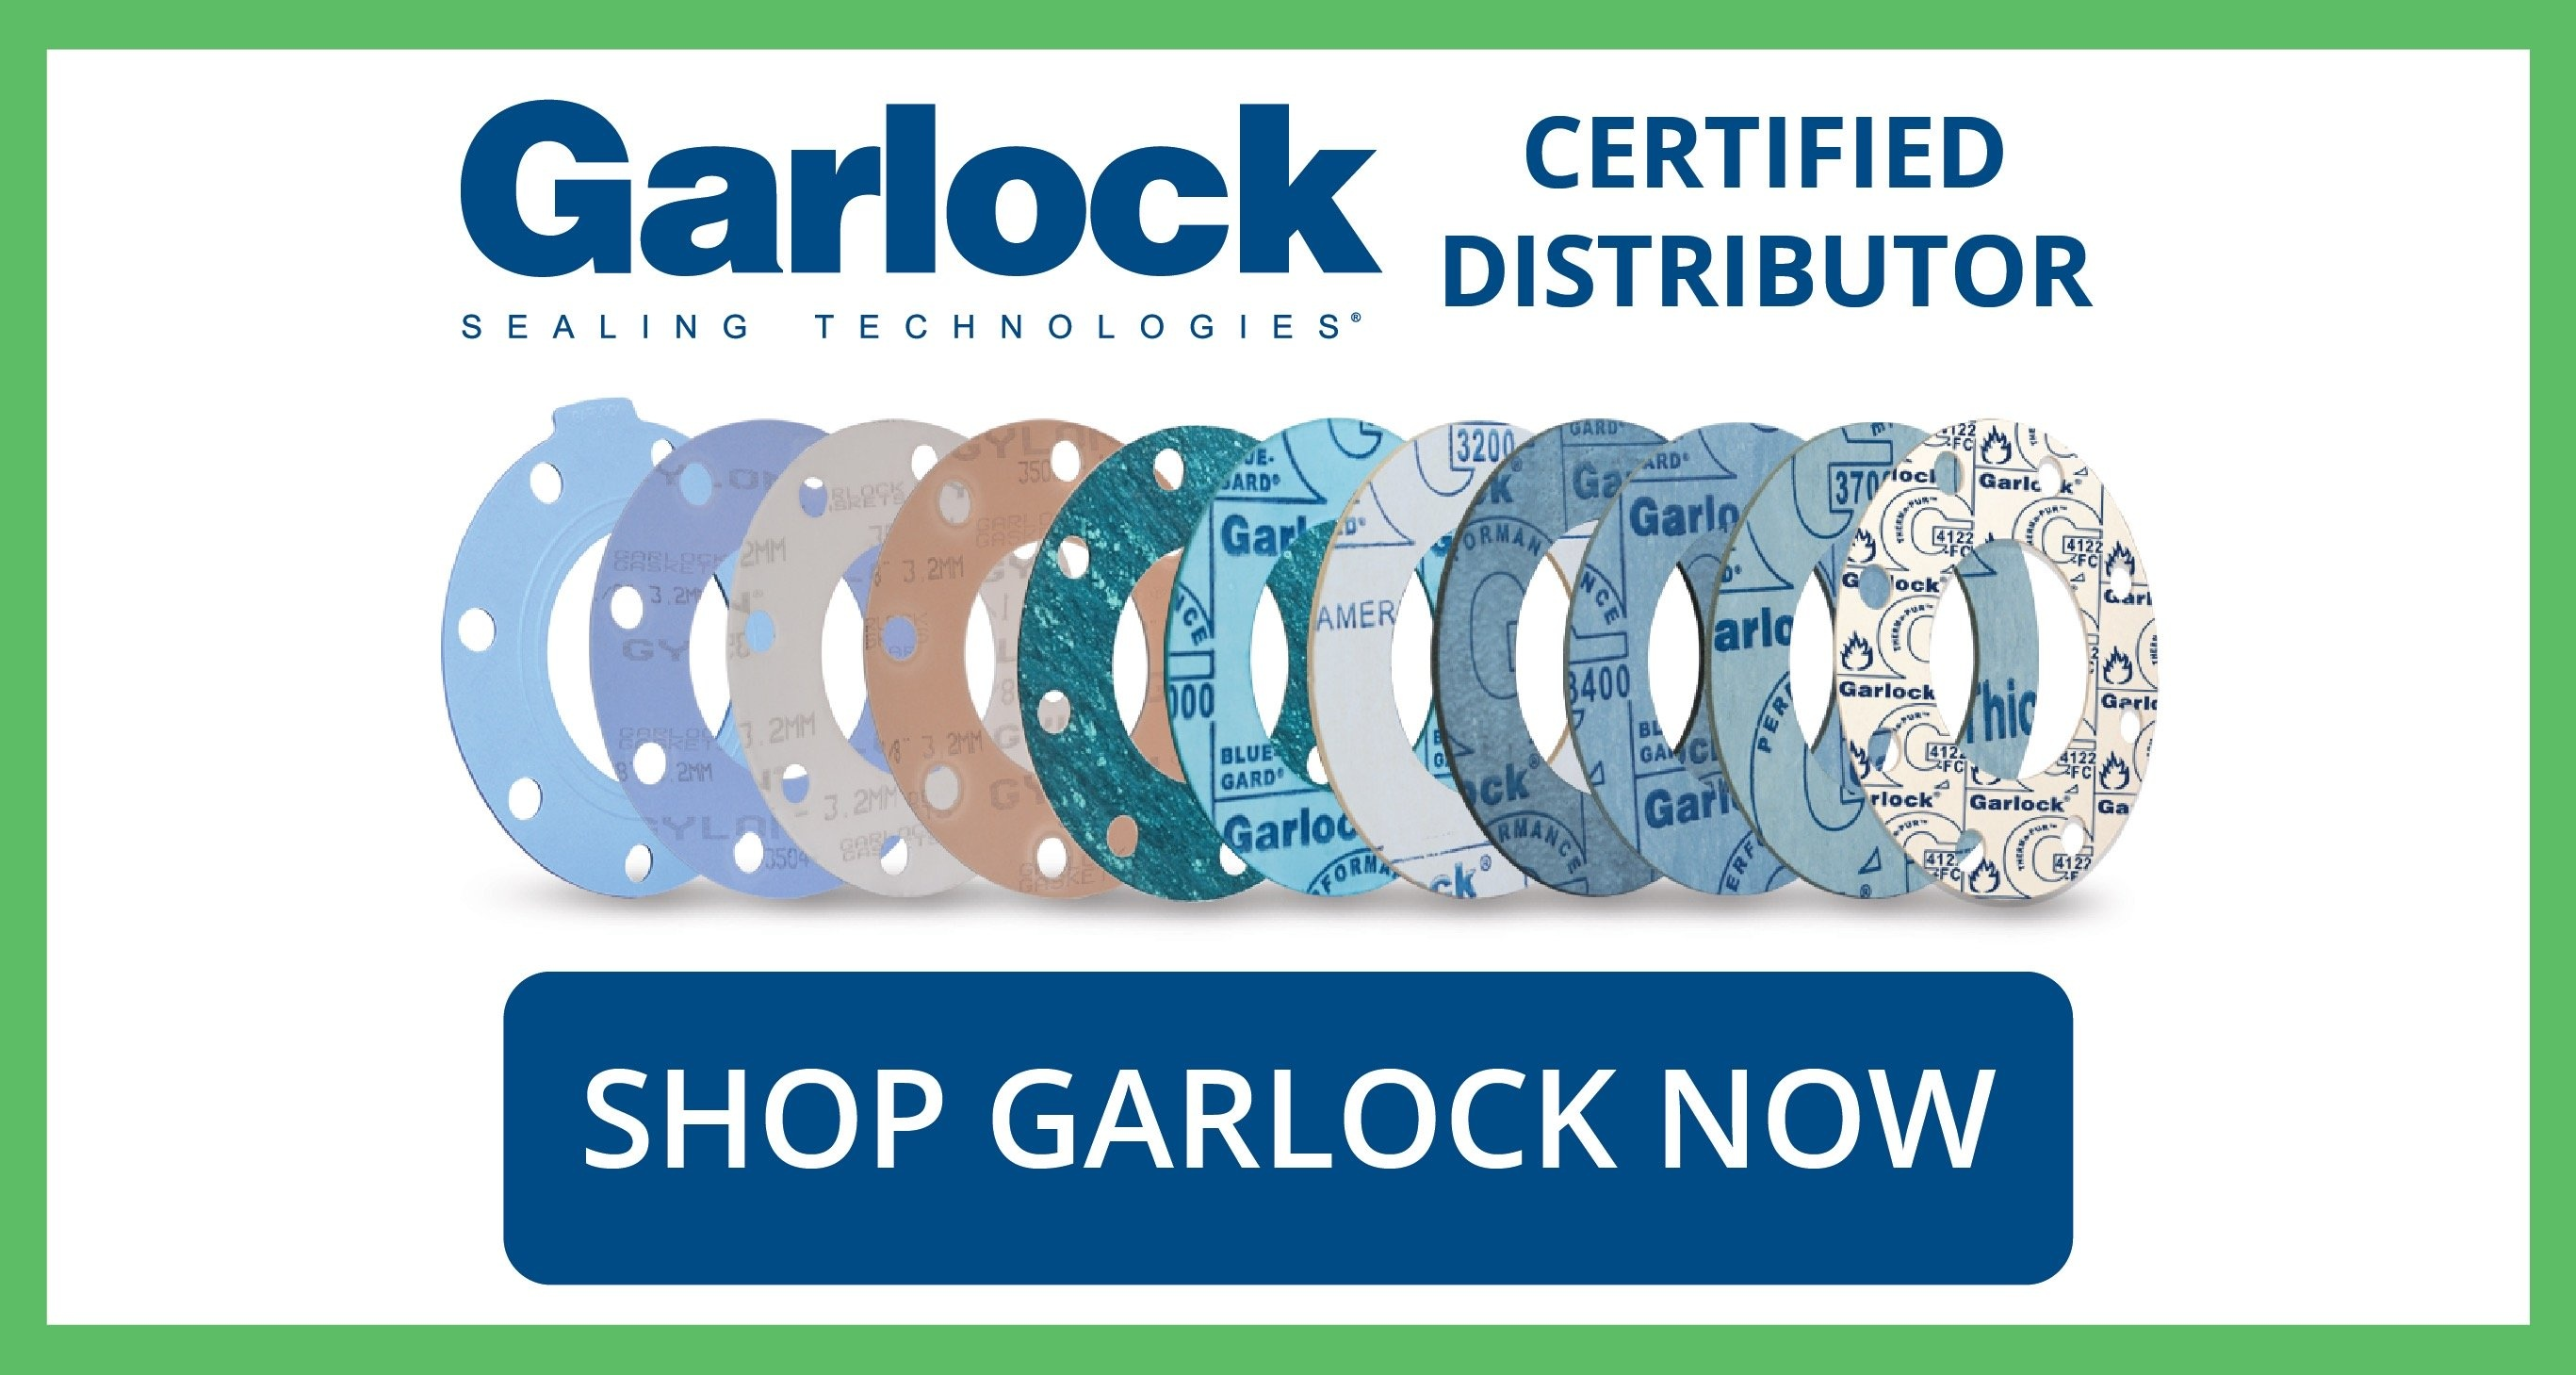 Shop Garlock Now